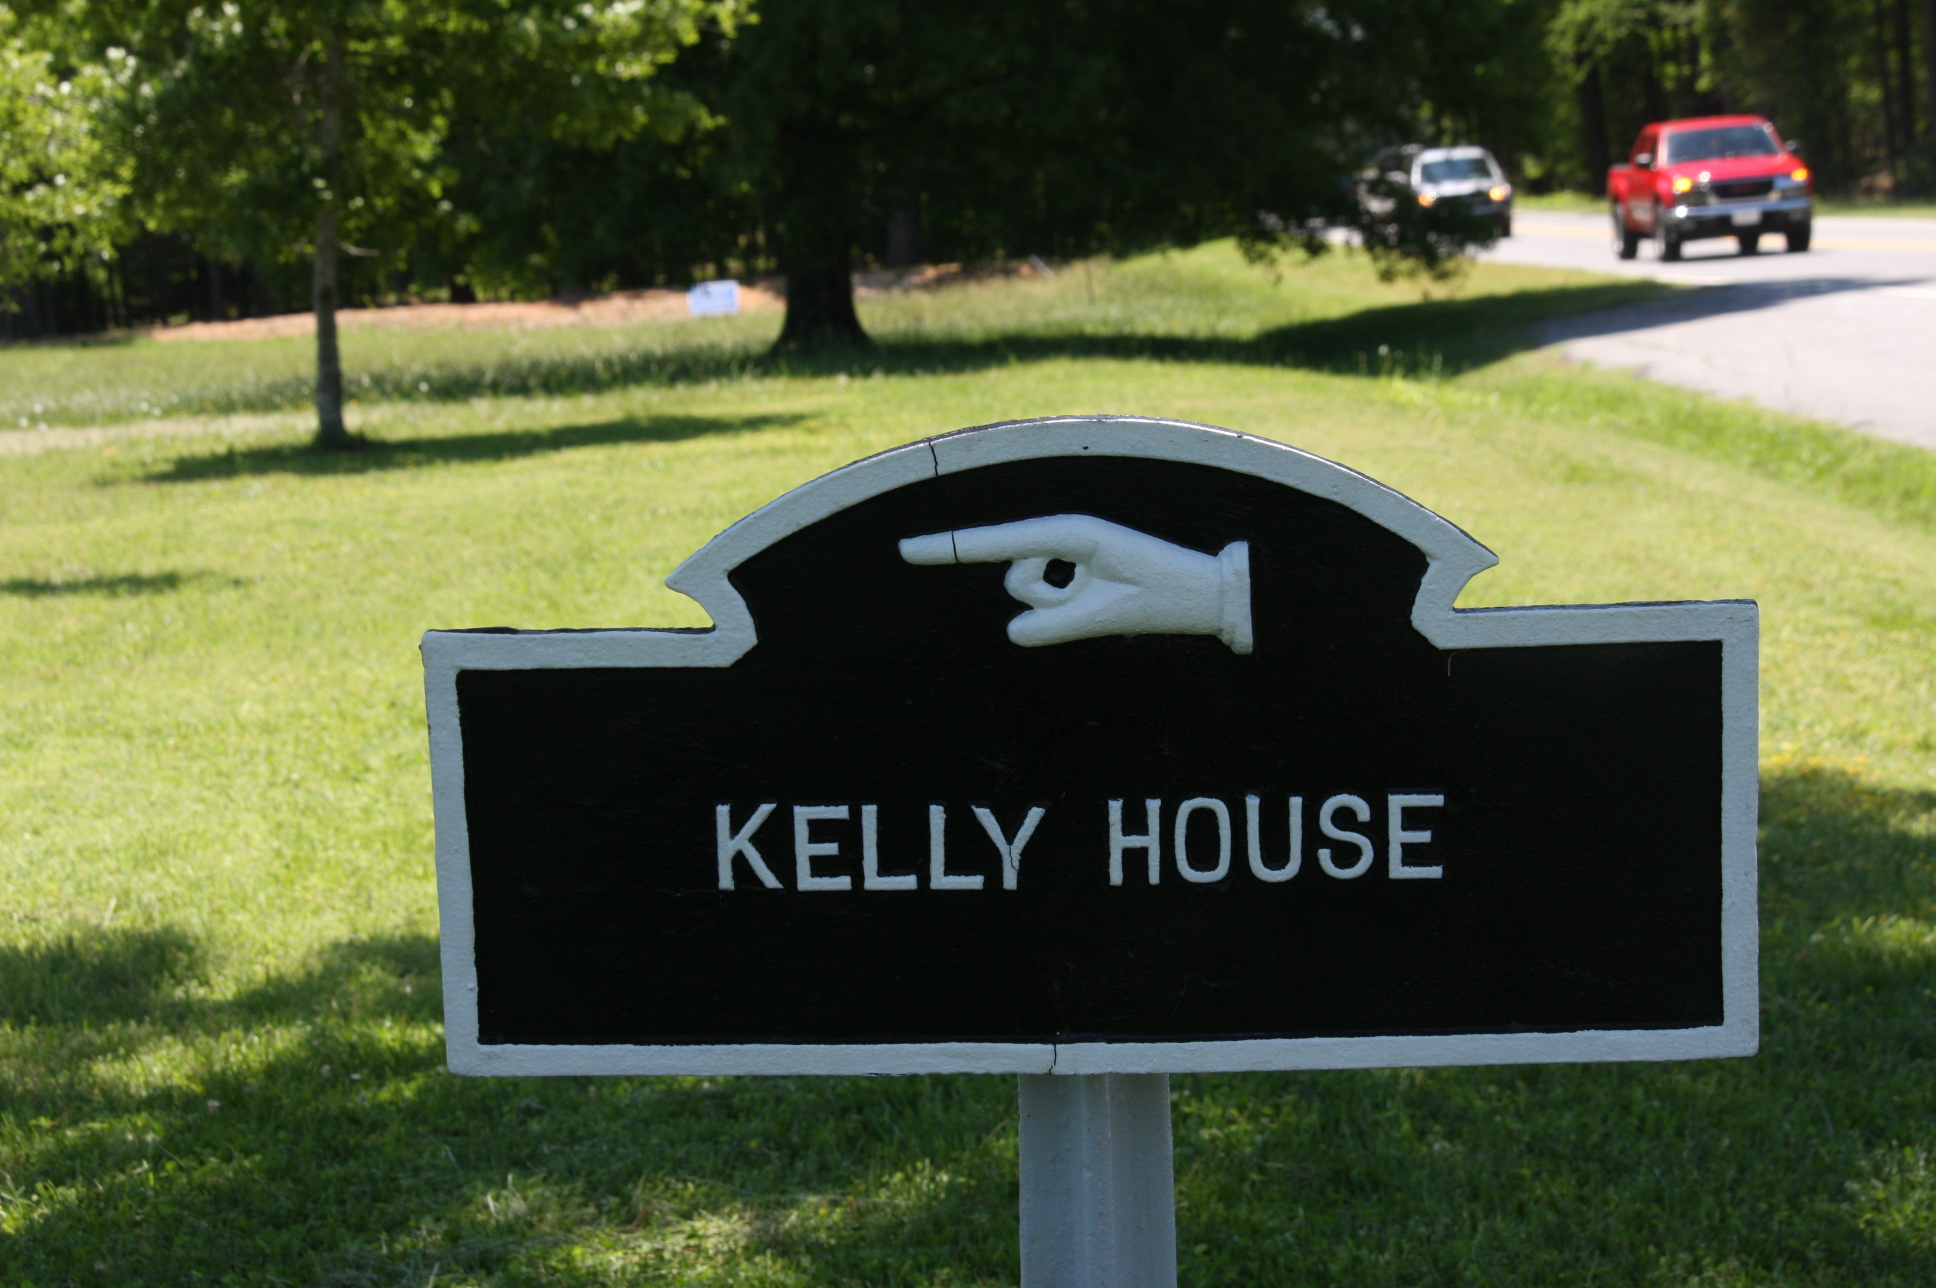 Kelly House, click photo to enlarge.